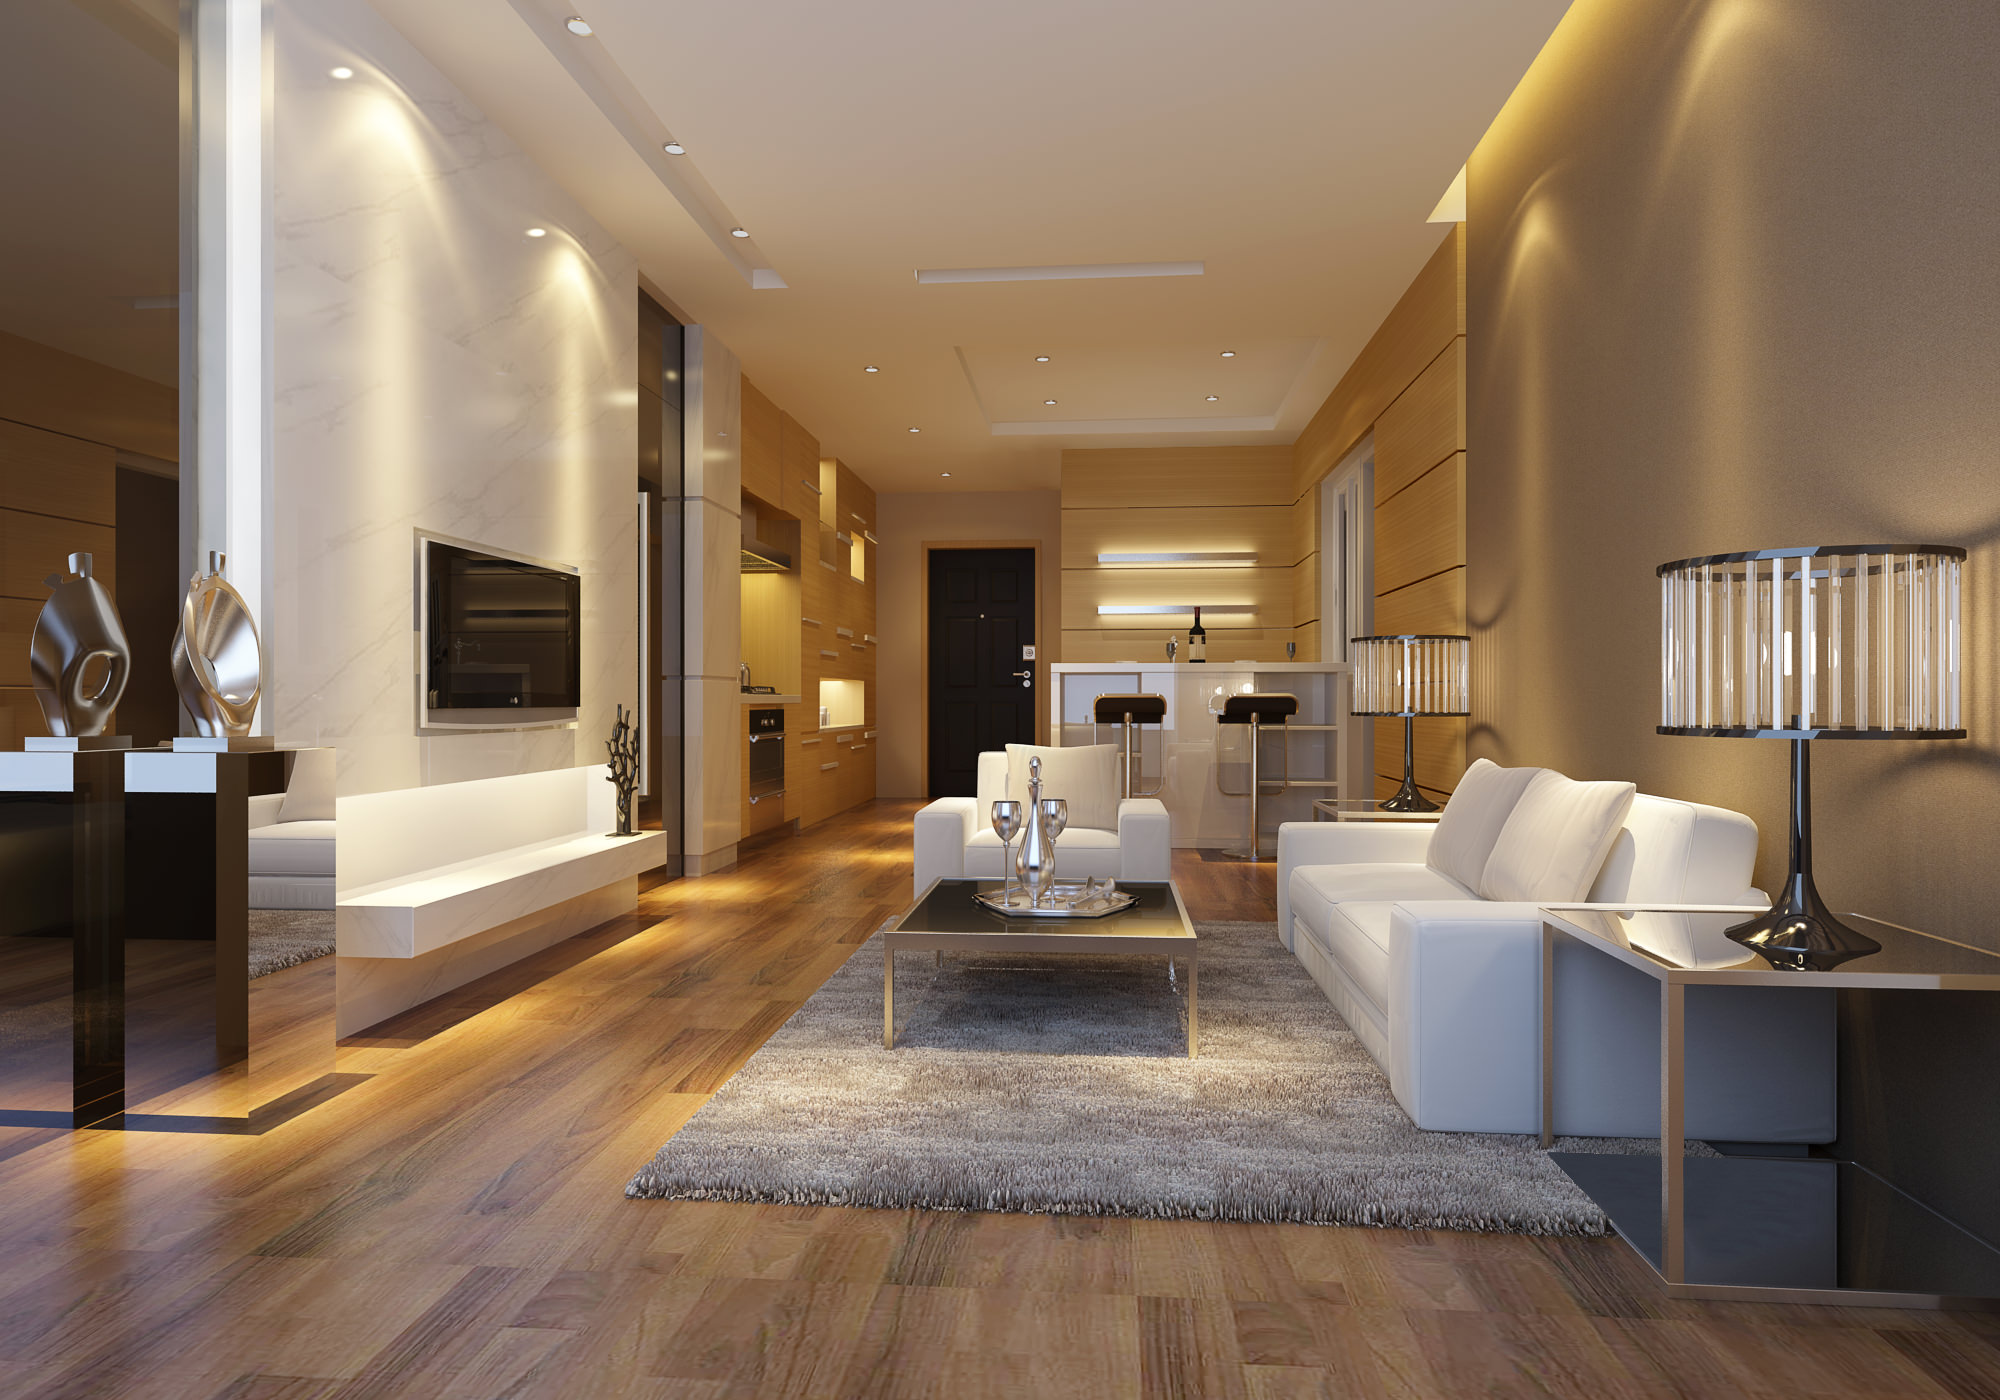 High Quality Modern Living Room With Wooden Floor Fully Furnished 3d Model Max 1 Part 30